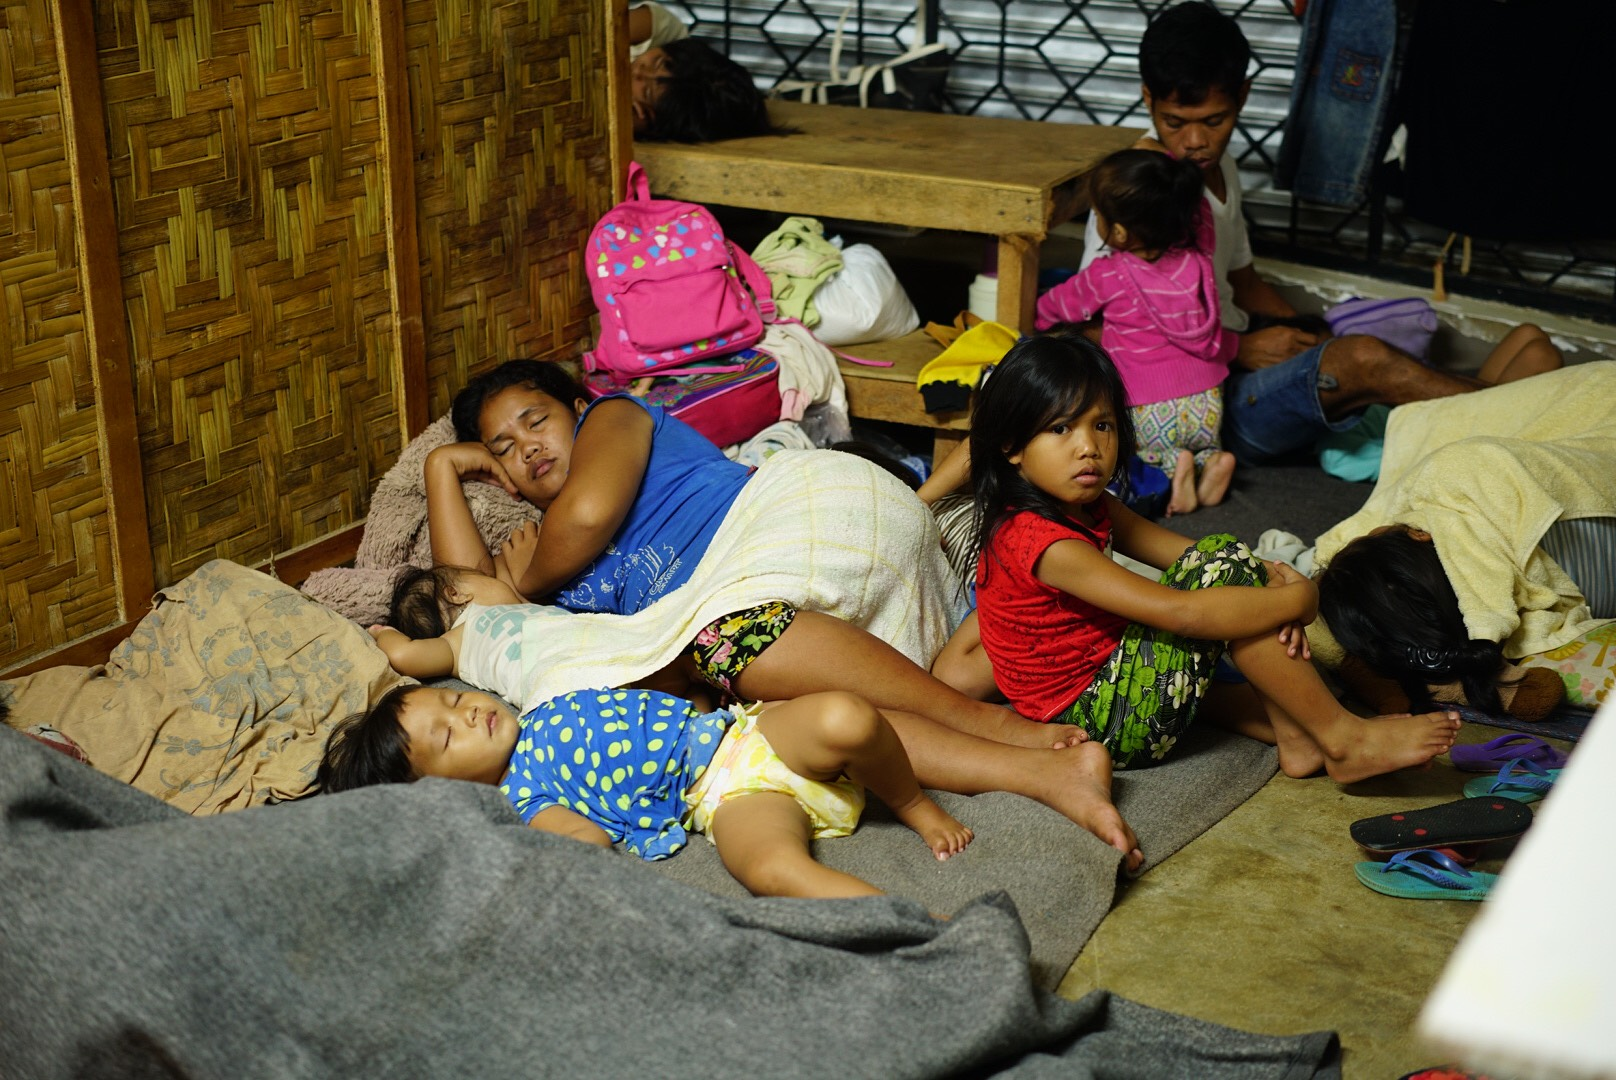 DSWD: Over 220,000 affected due to Urduja